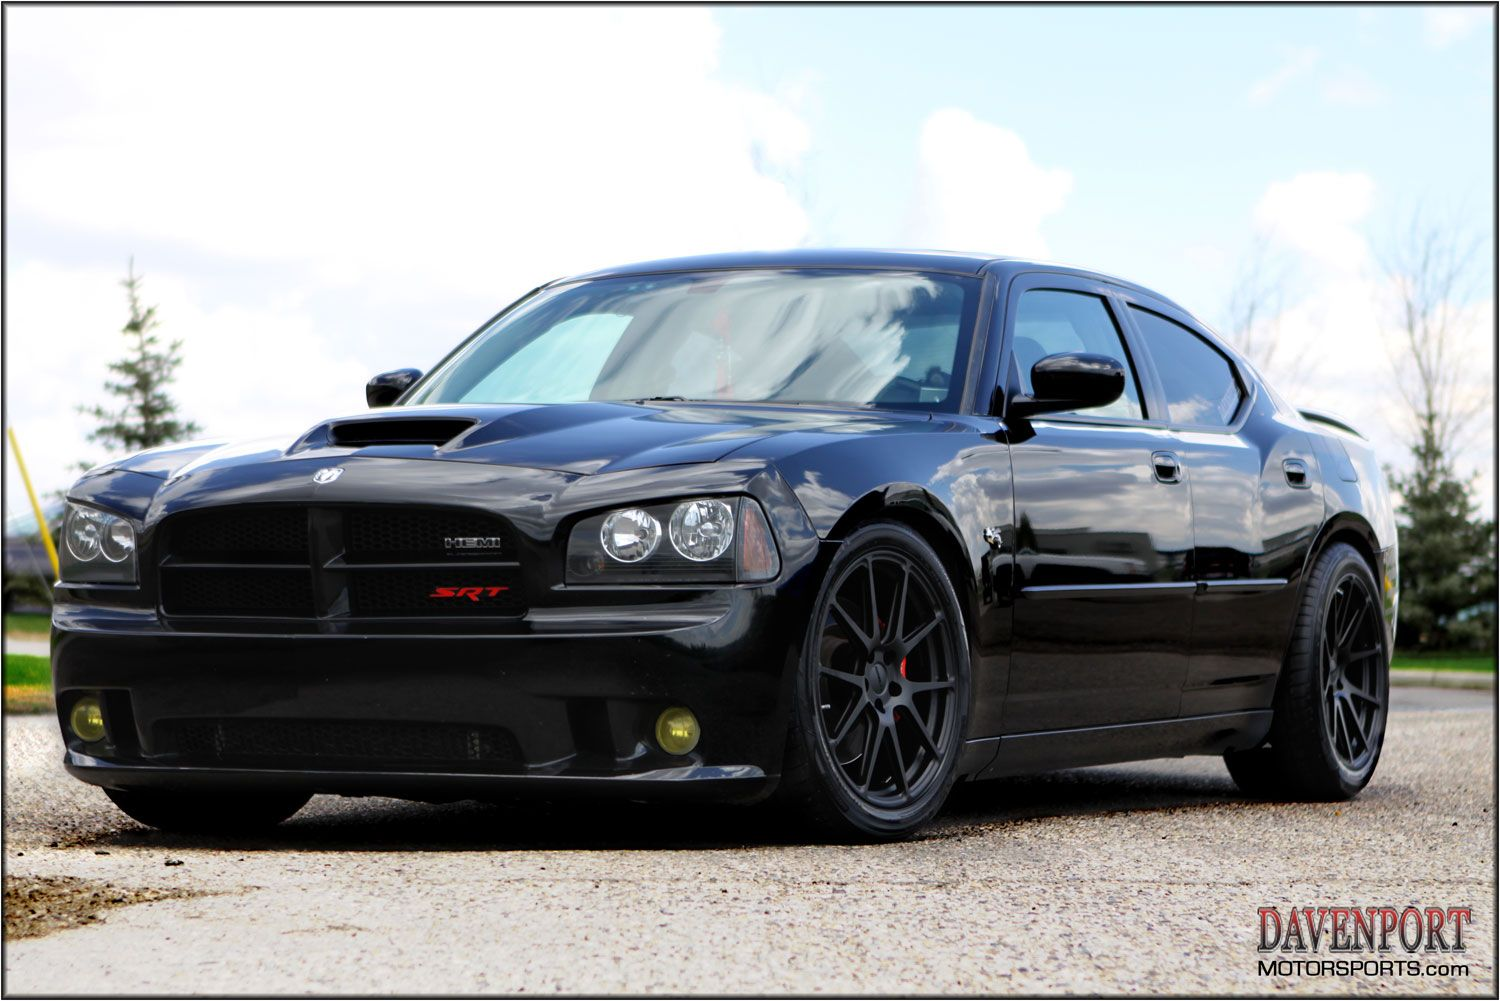 This Supercharged Dodge Charger Srt8 Prepared By Davenport Motorsports Is Just As Mean As It Looks With Superch Dodge Charger Dodge Charger Srt8 Charger Srt8